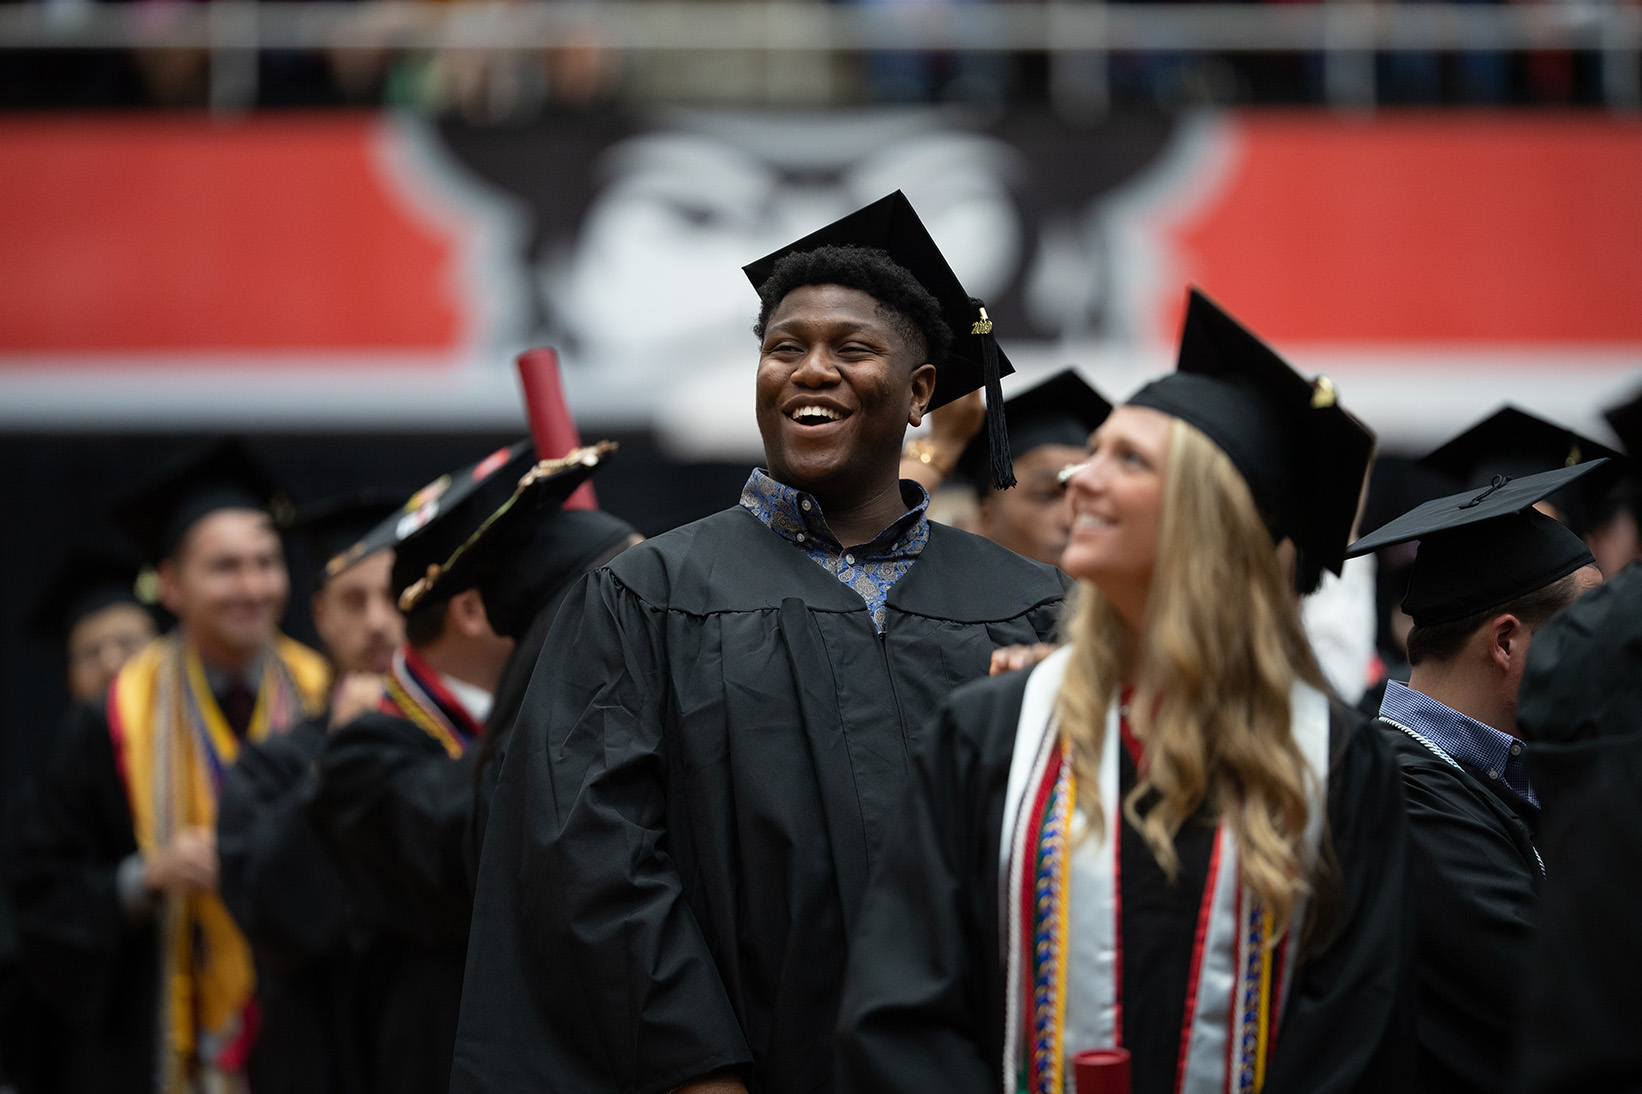 Students smile at commencement